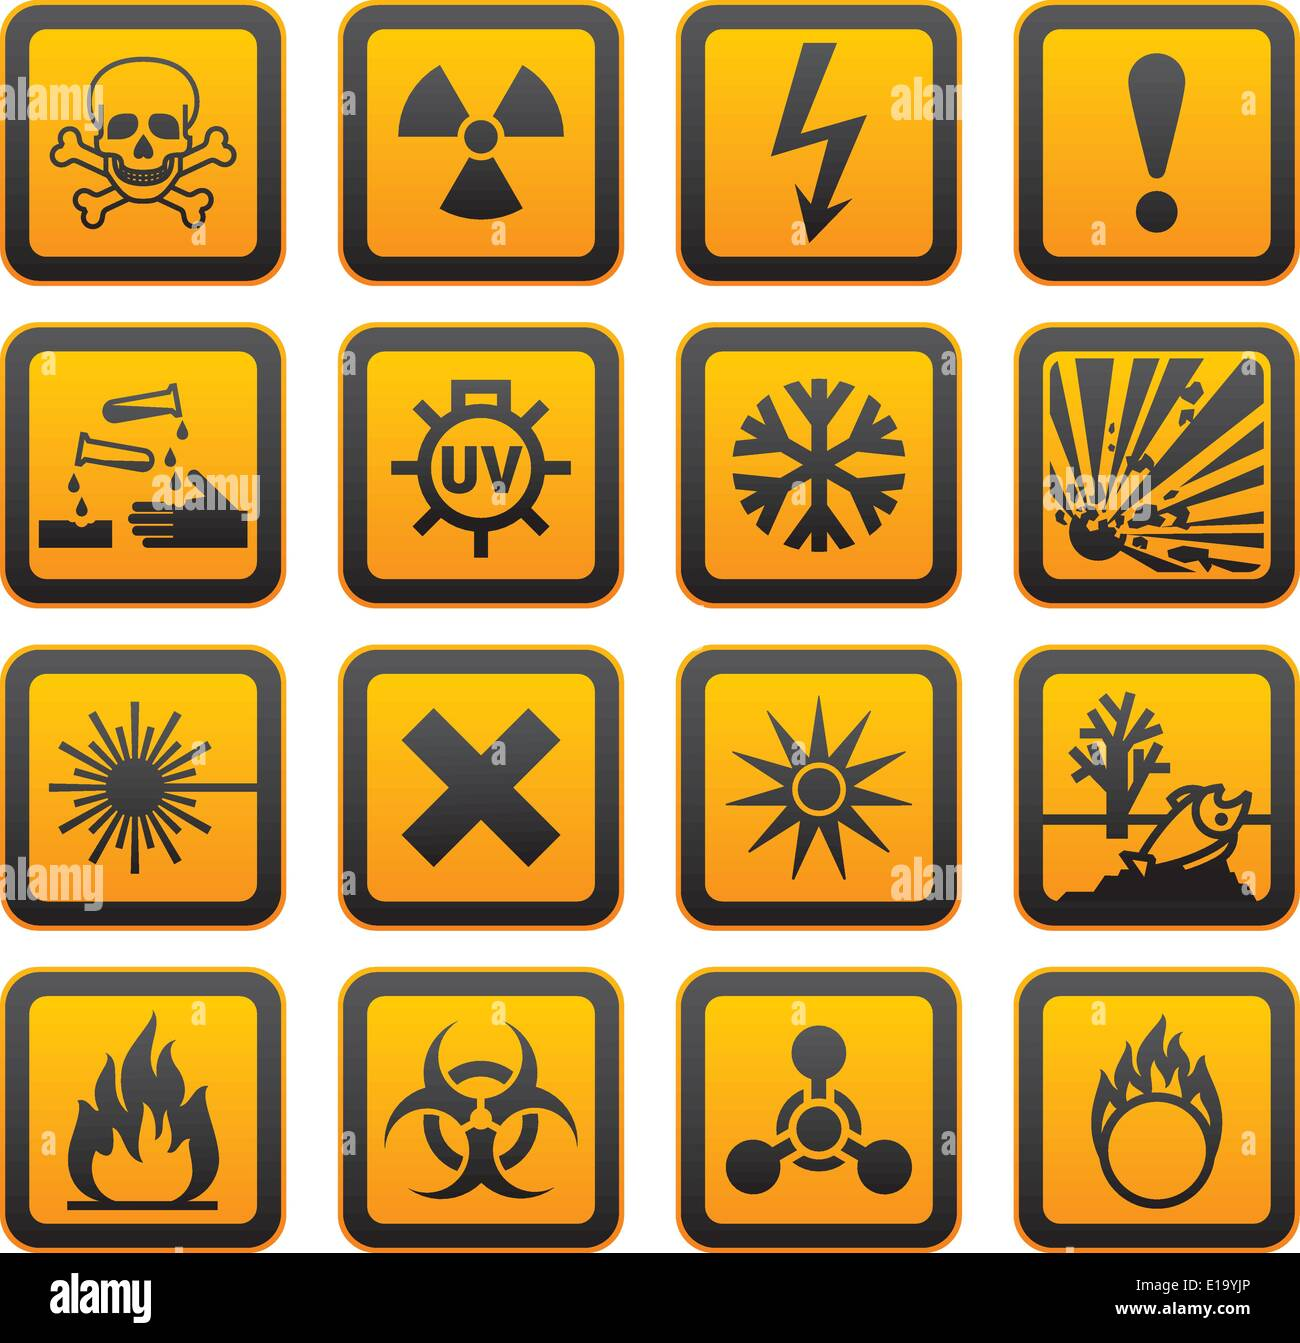 Biological Hazard Symbols Stock Photos Biological Hazard Symbols